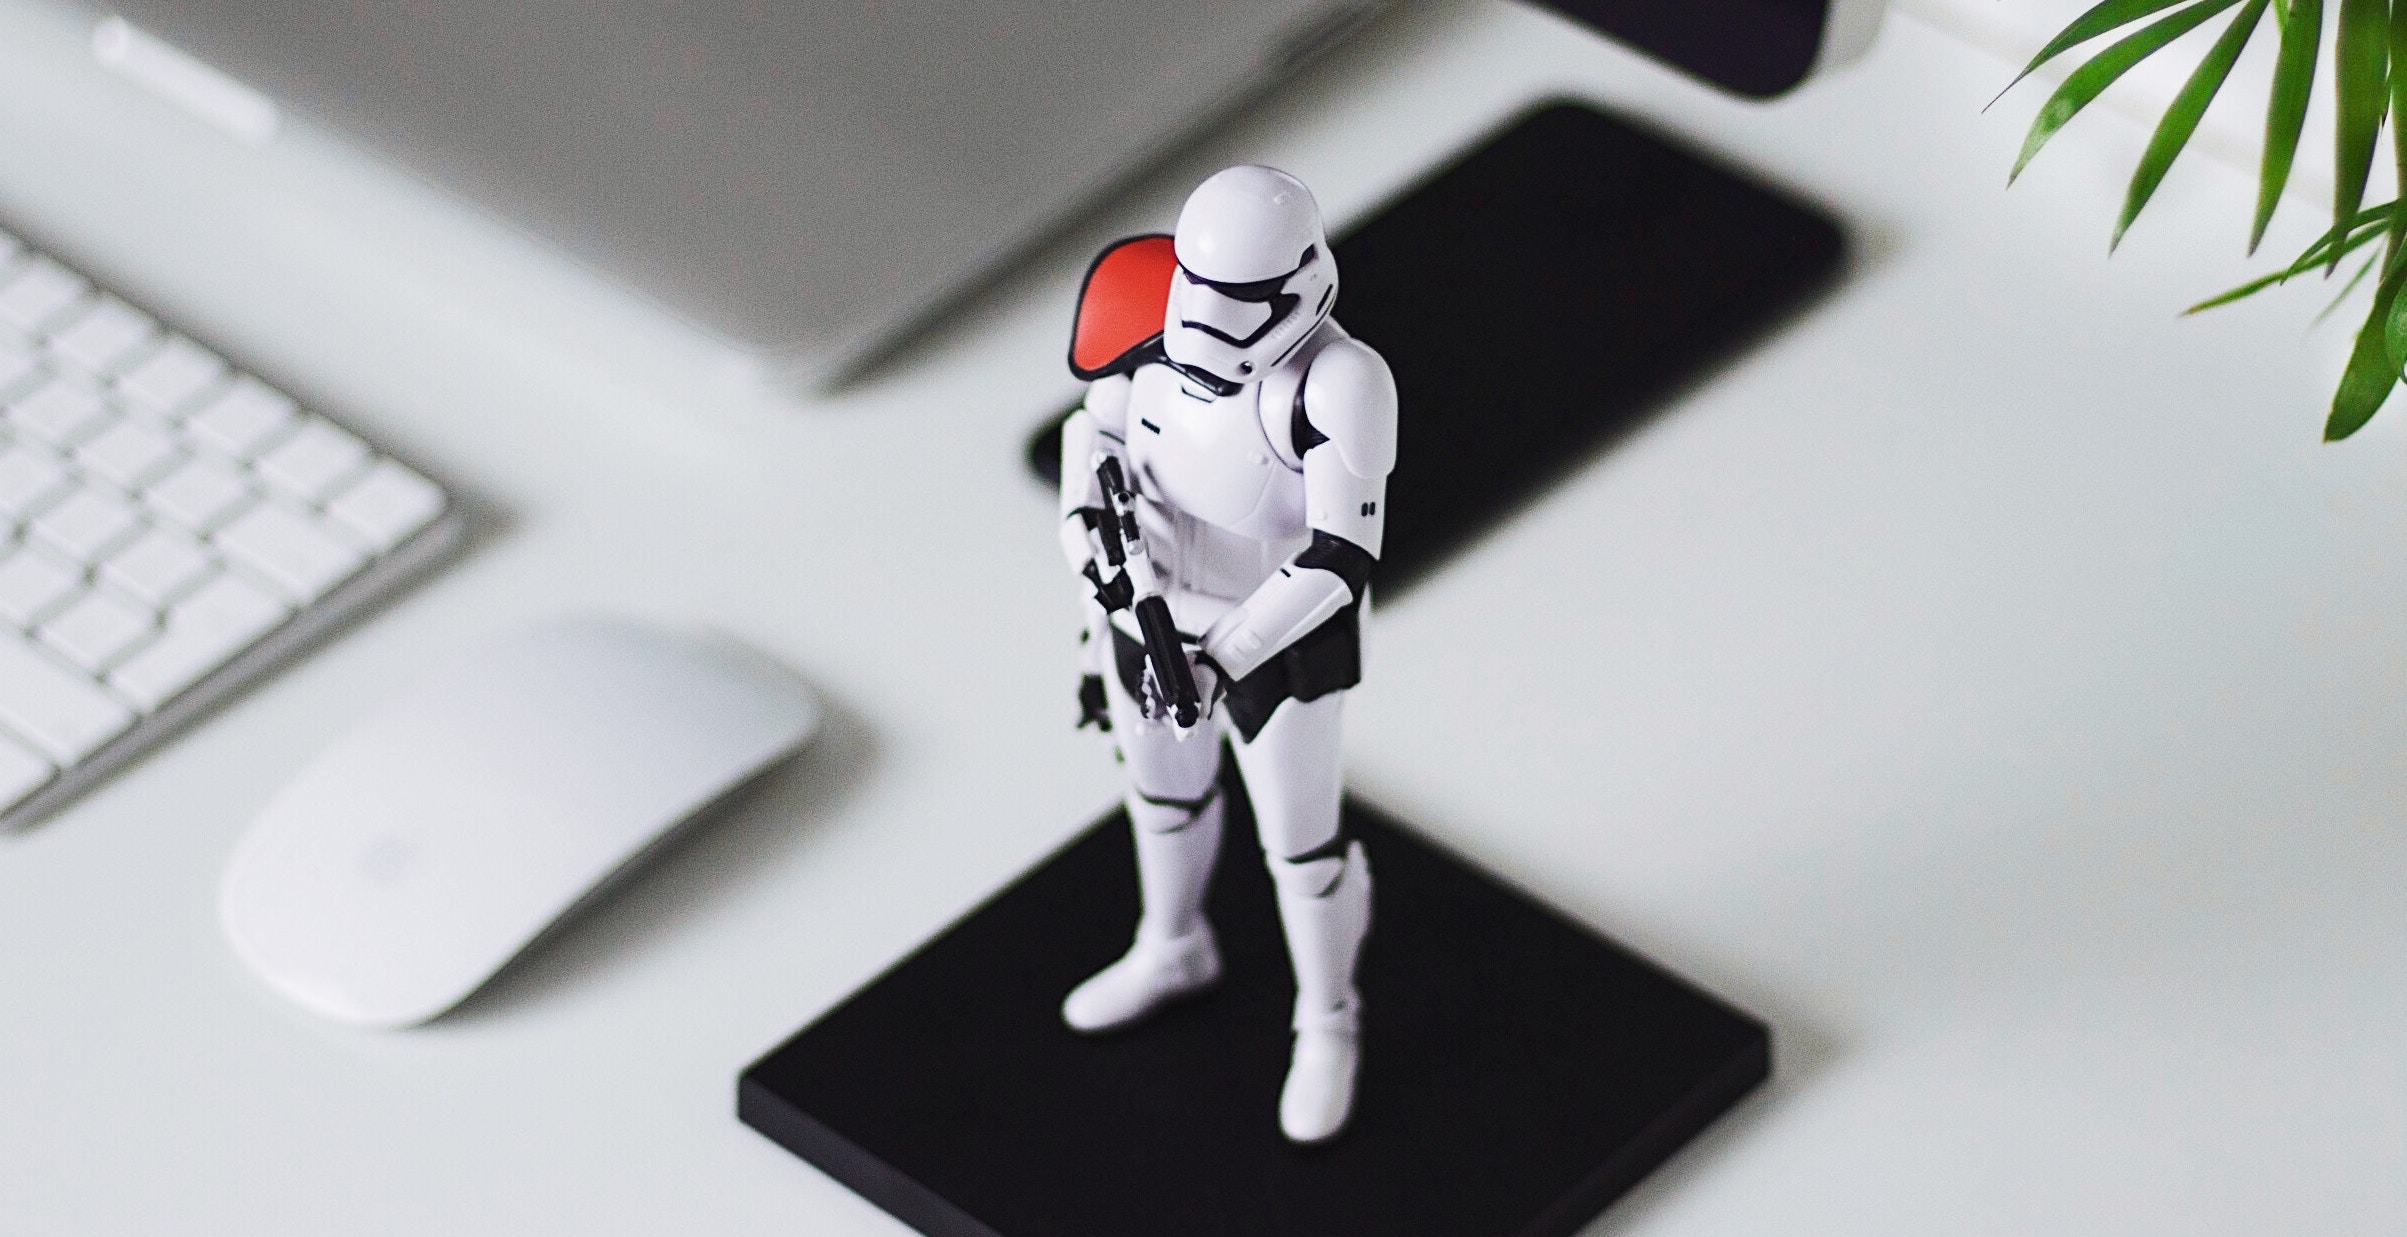 Stormtrooper on a mousepad